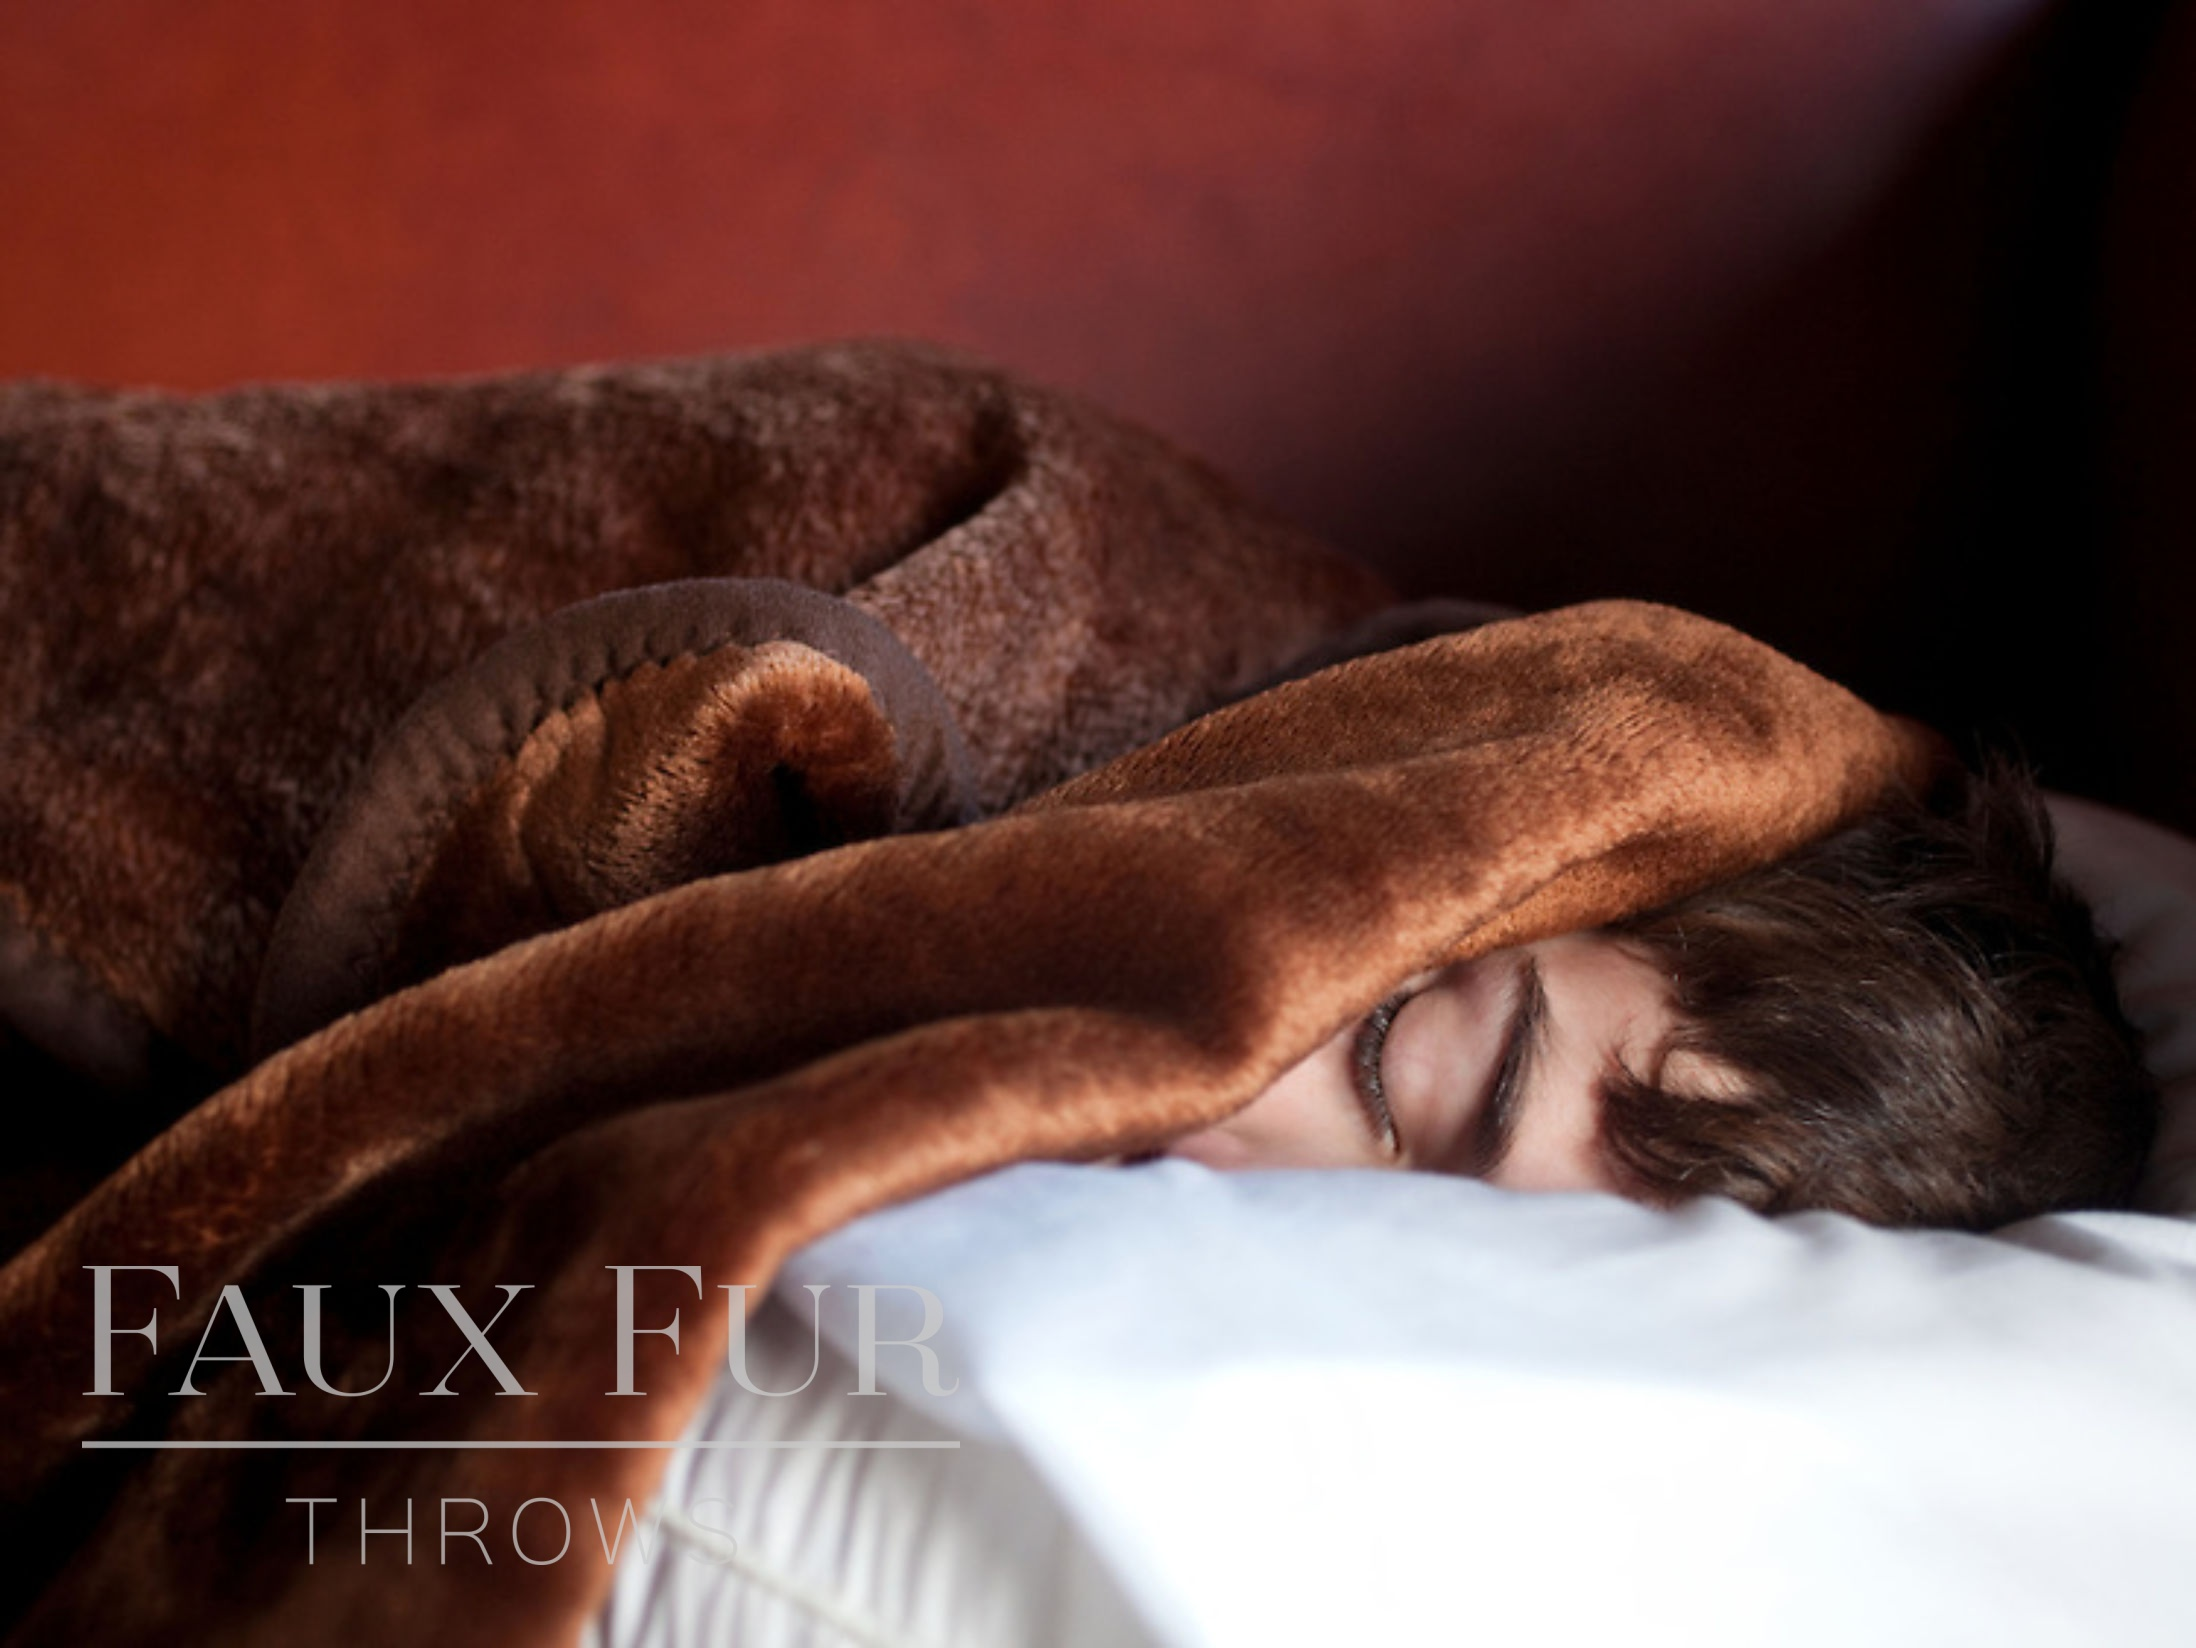 Boy-Asleep in Fur Throw